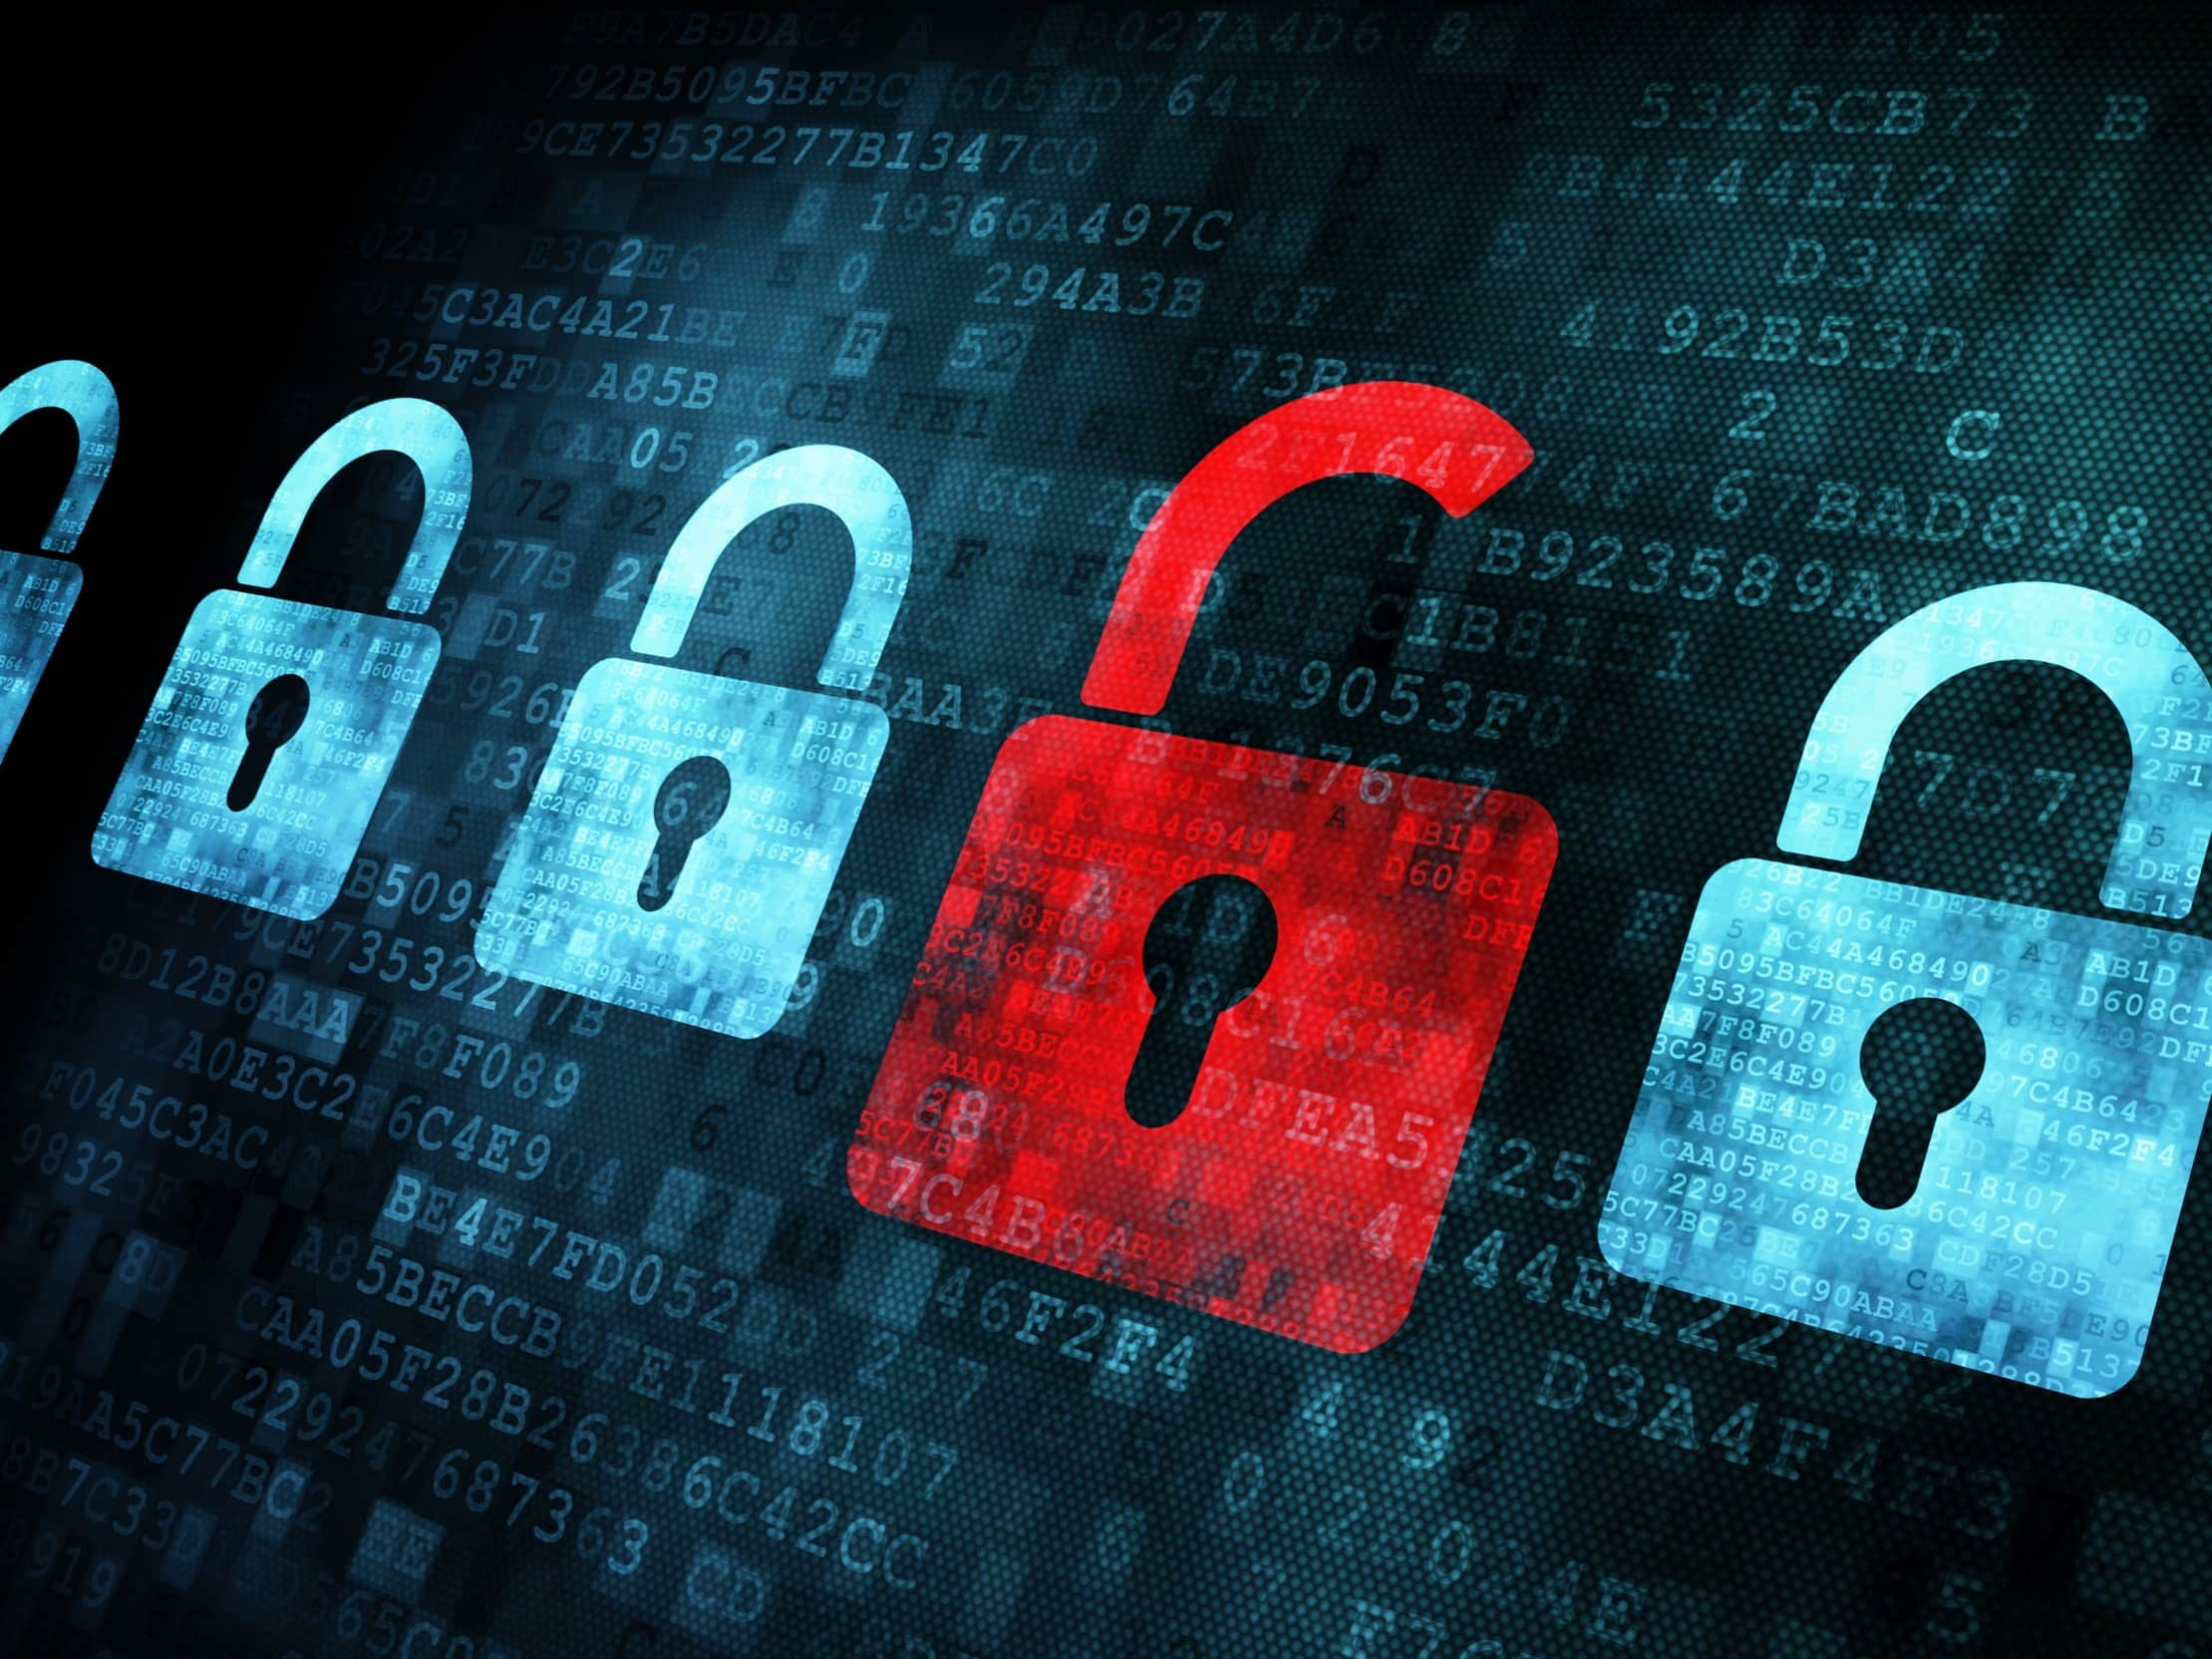 content/en-za/images/repository/isc/types-of-cybercrimes-tips.jpg